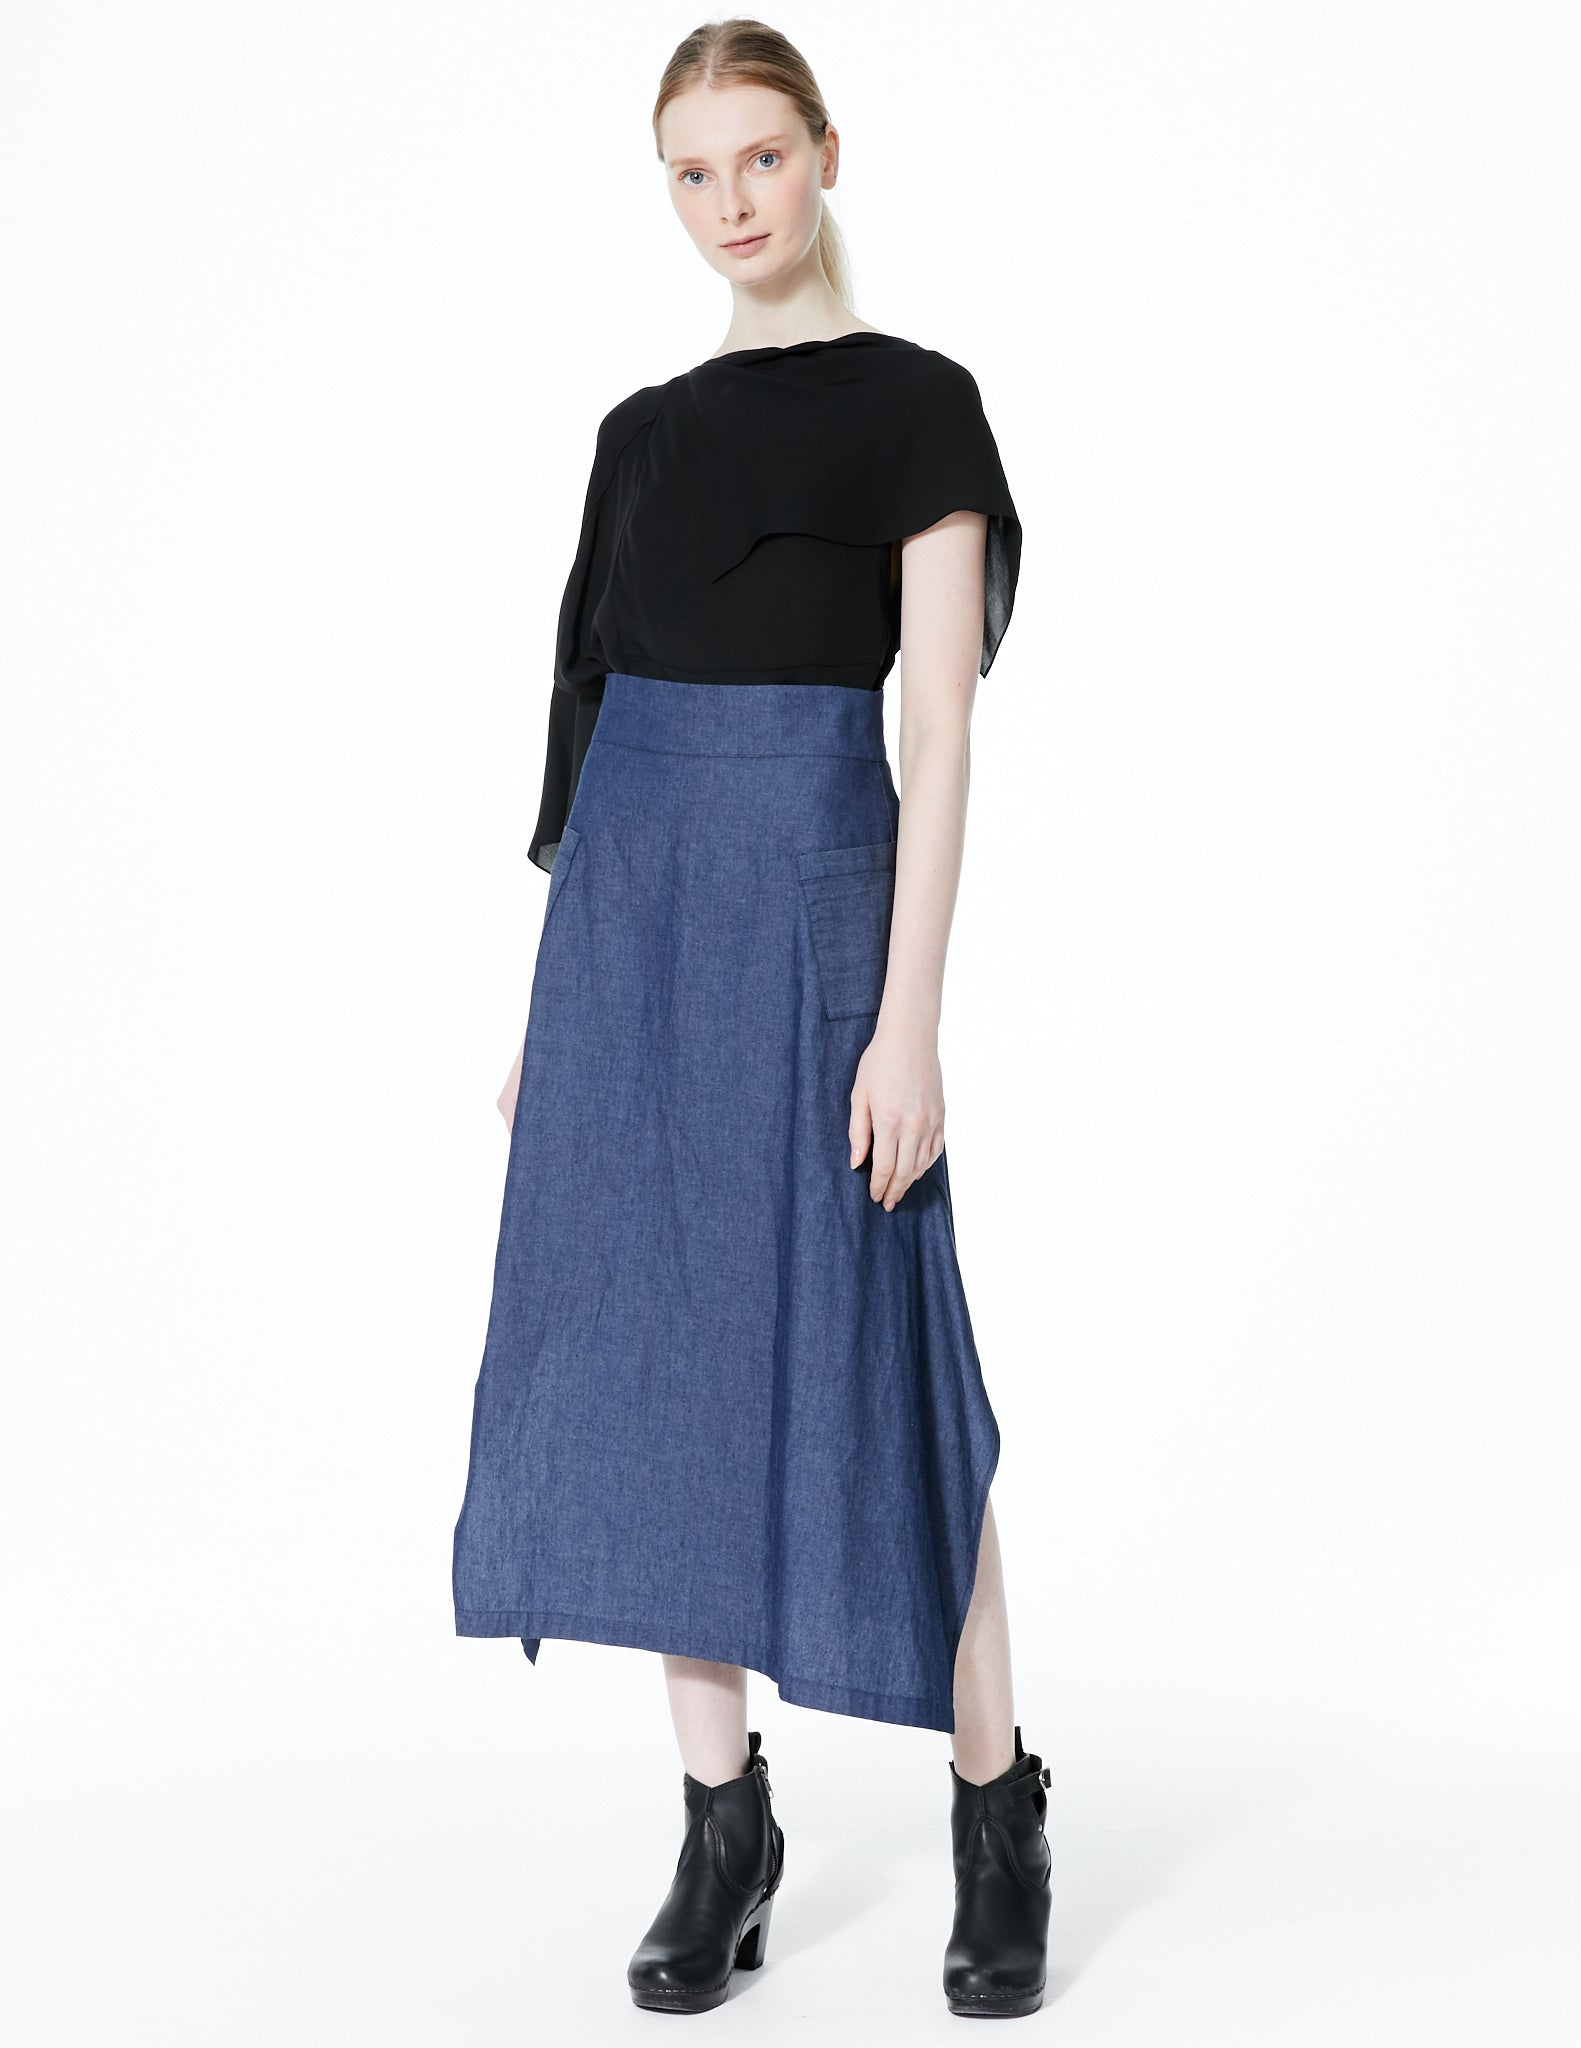 long fitted denim skirt with open side slits and pockets. made in new york city.